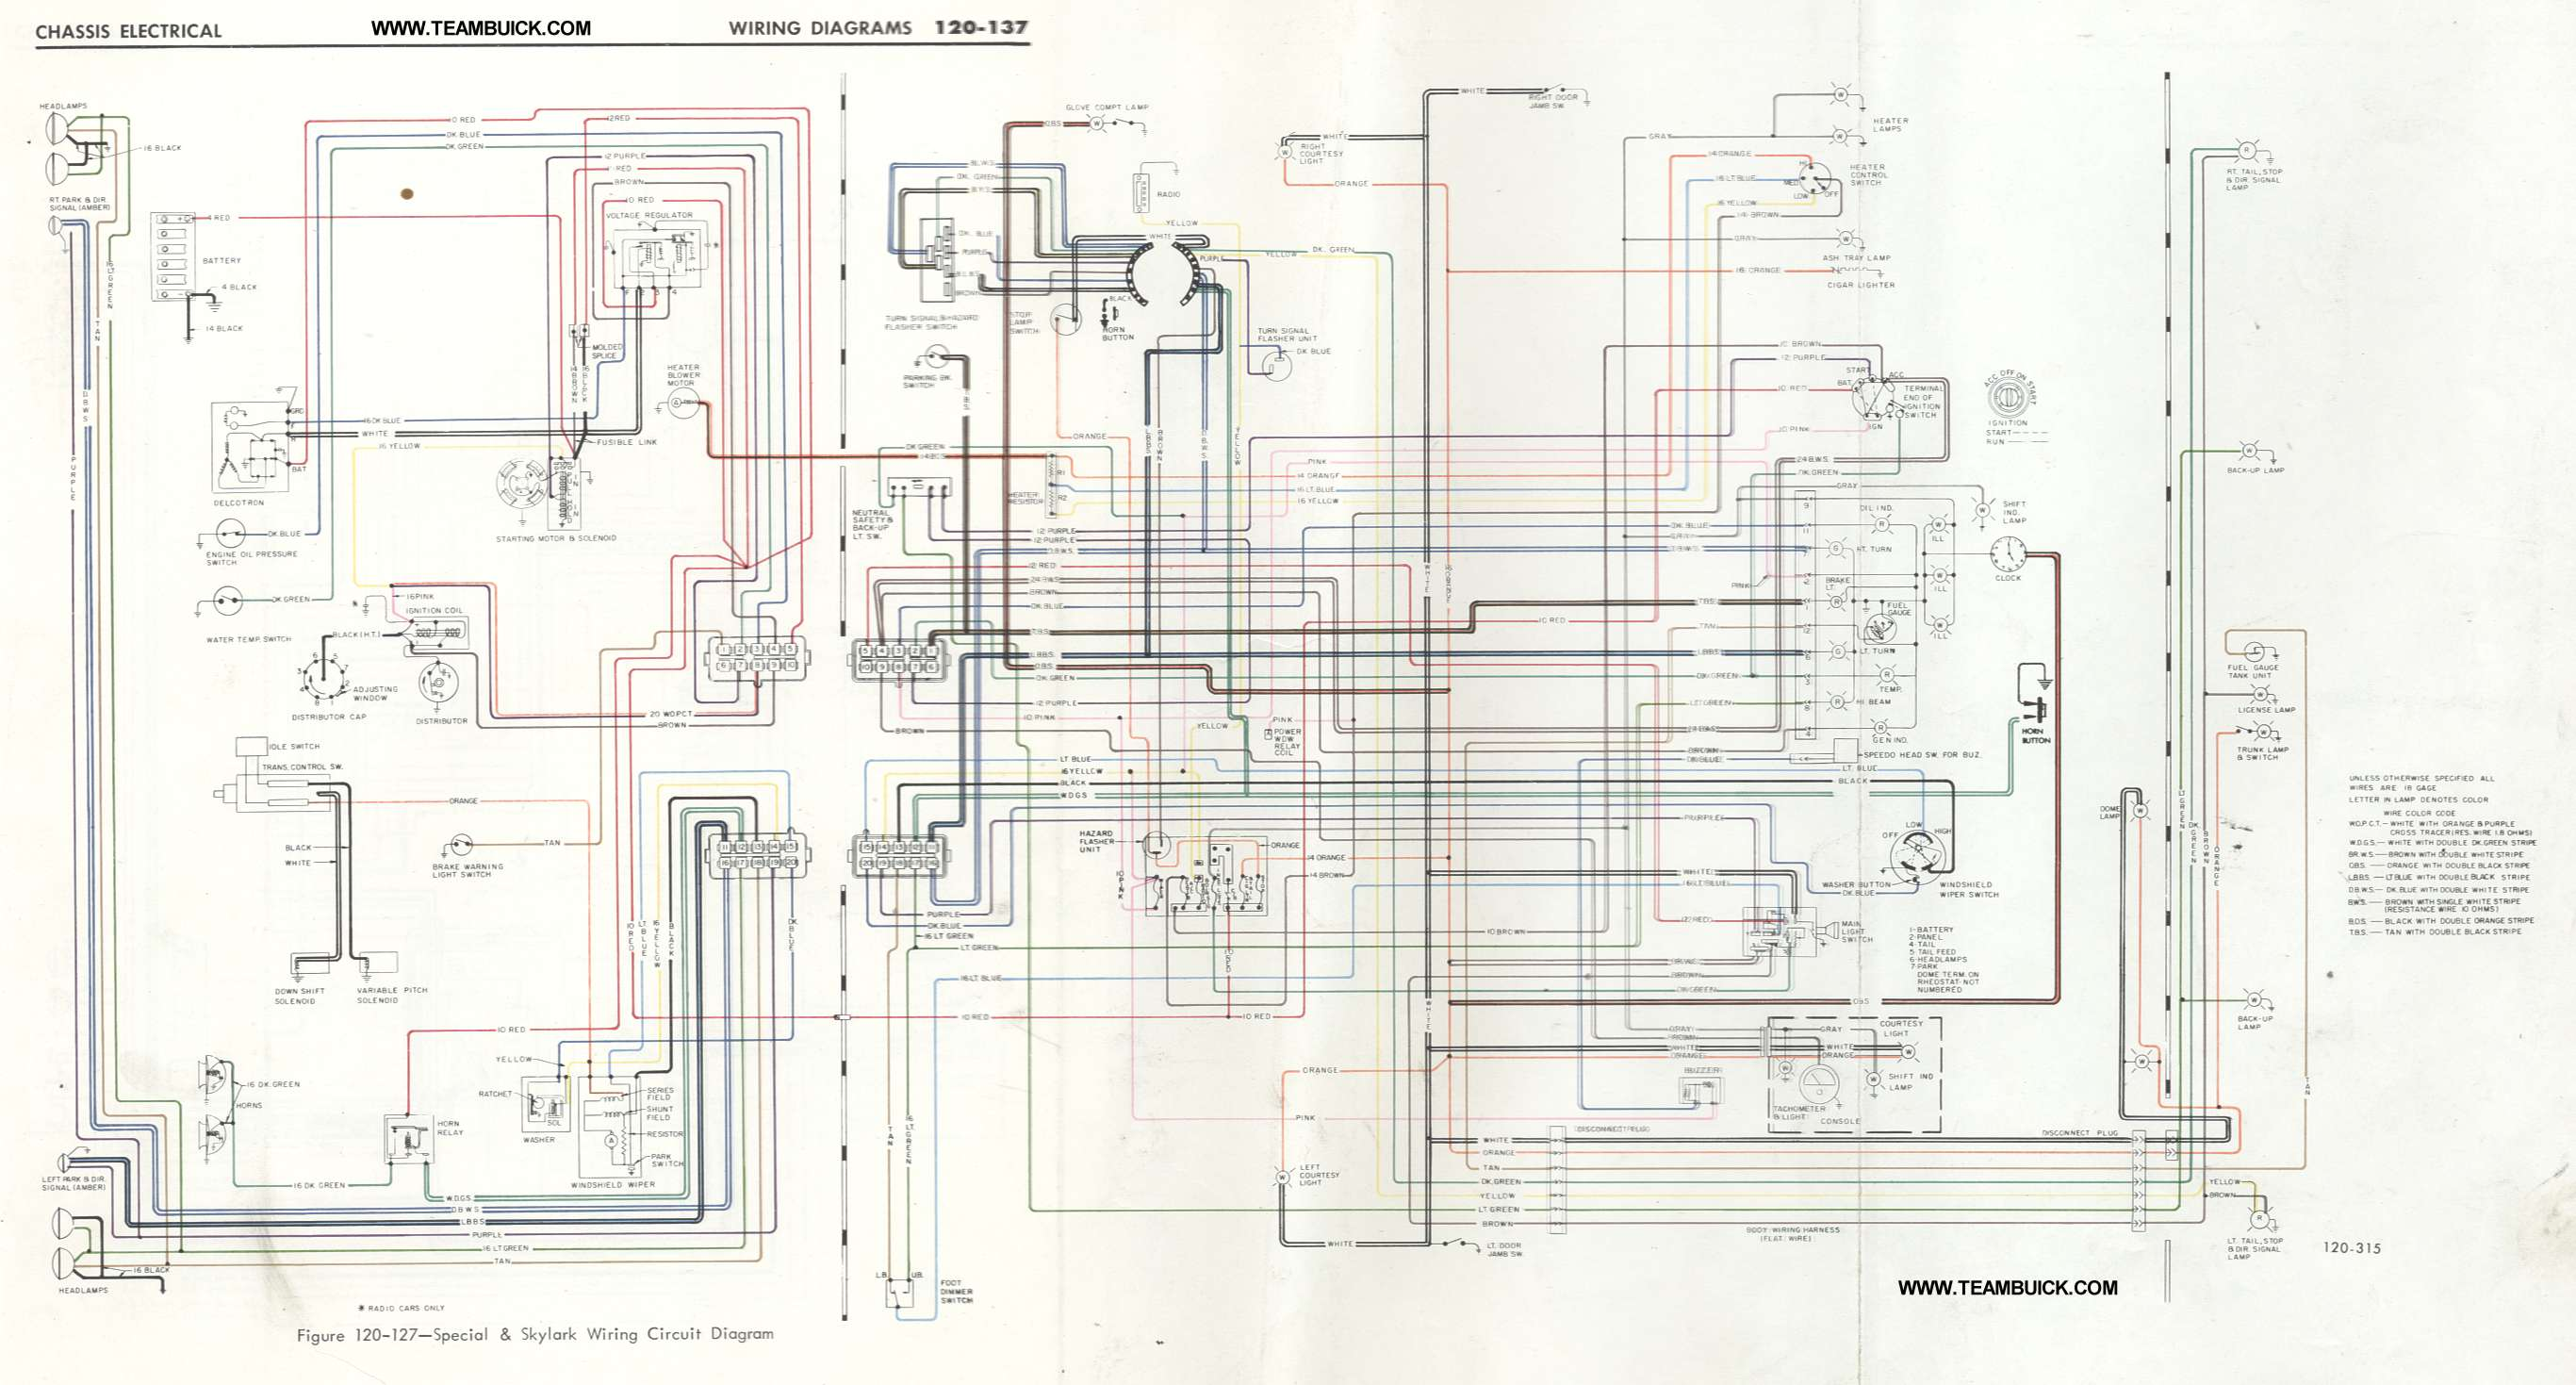 1970 buick skylark wiring diagram wire data schema u2022 rh dbatuonline co